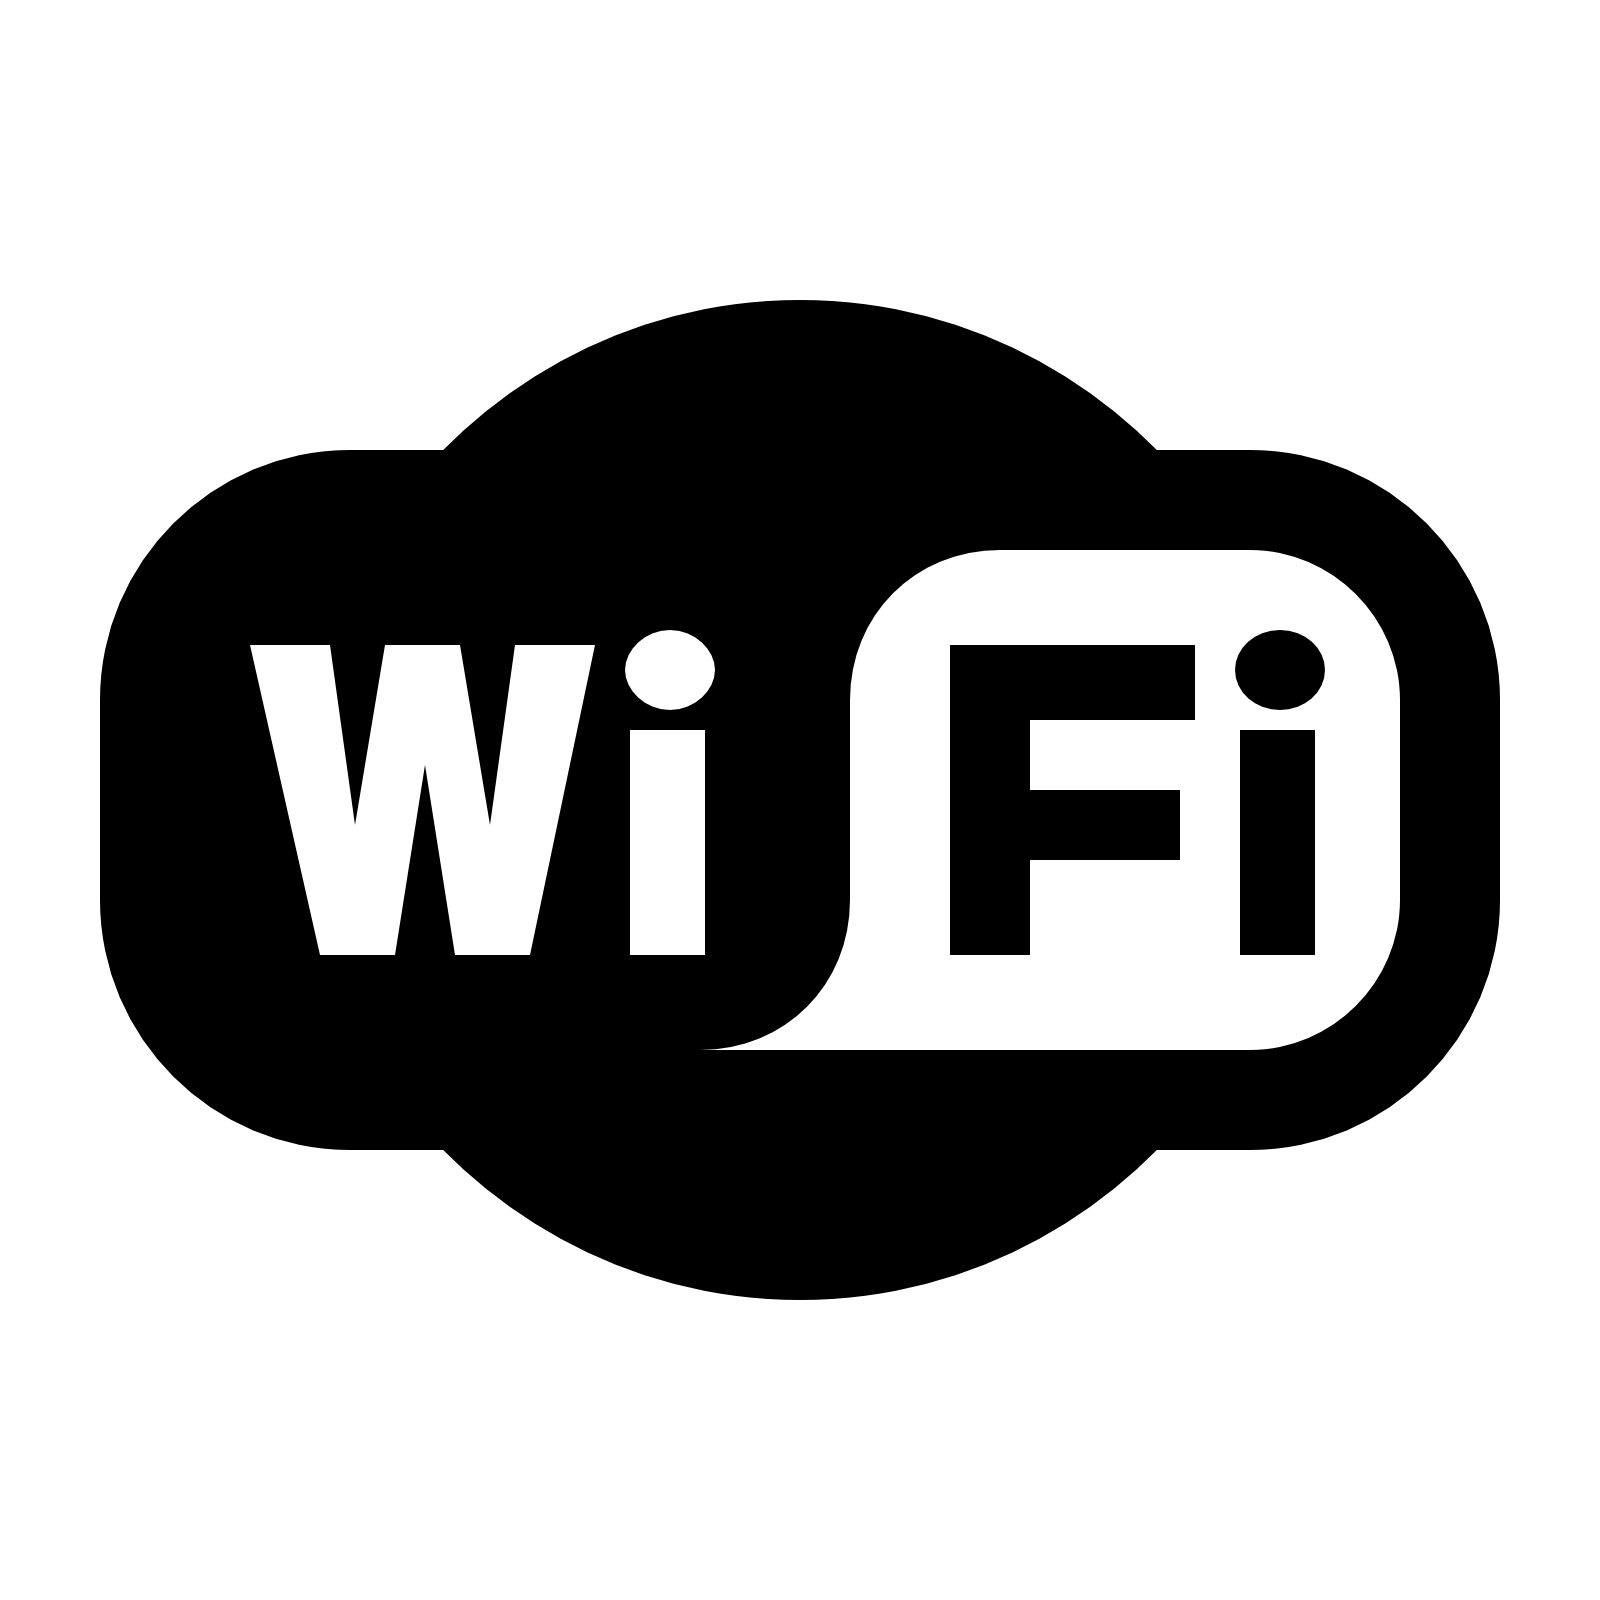 Wi-Fi Logo Icon - Free Download at Icons8 - Wifi HD PNG